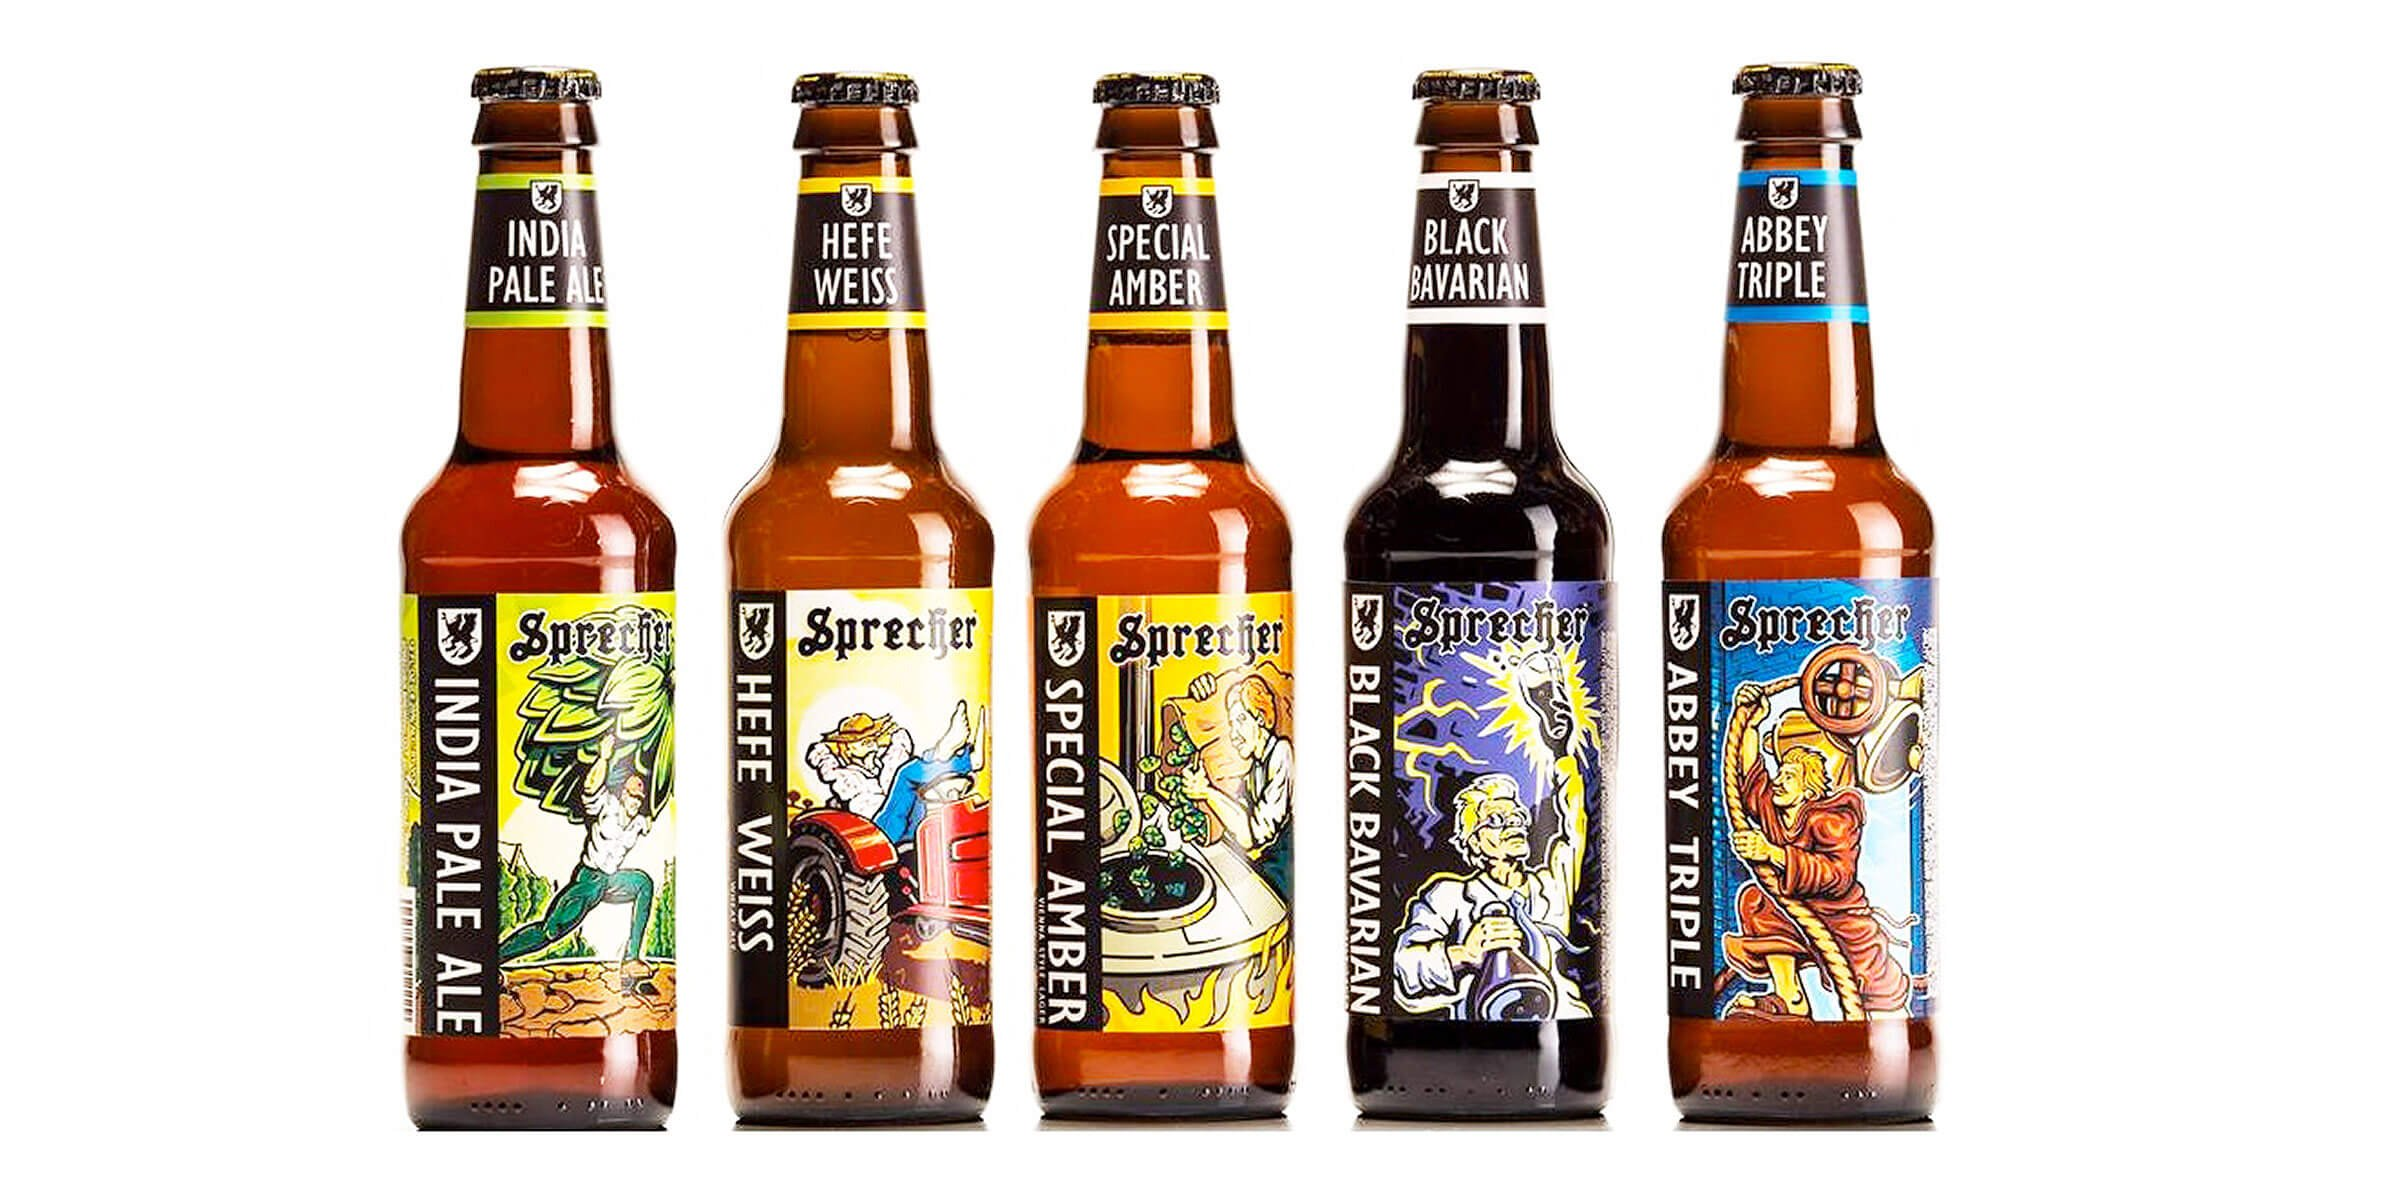 A lineup of bottled beers offered by Sprecher Brewing Company